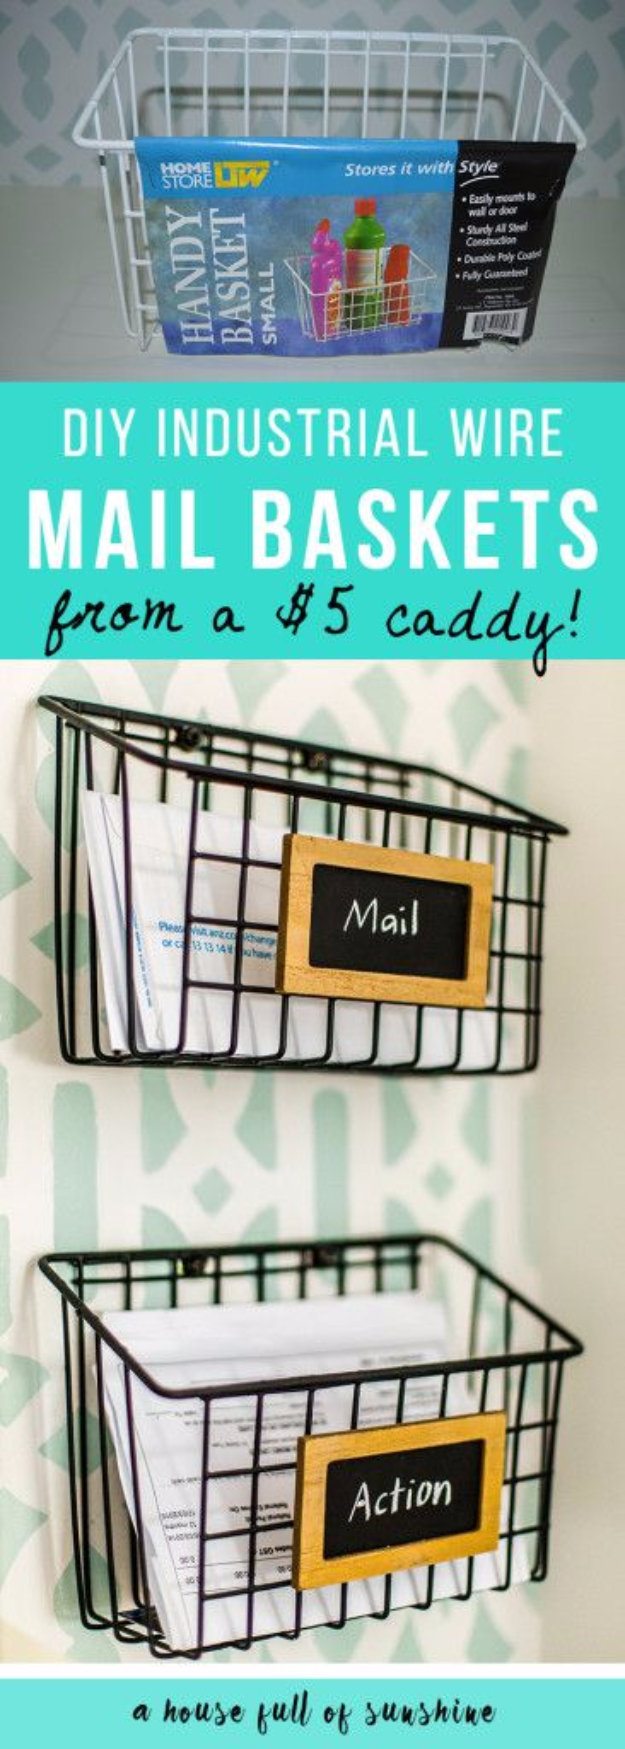 Creative Crafts Made With Baskets - DIY Industrial Wire Mail Basket - DIY Storage and Organizing Ideas, Gift Basket Ideas, Best DIY Christmas Presents and Holiday Gifts, Room and Home Decor with Step by Step Tutorials - Easy DIY Ideas and Dollar Store Crafts #crafts #diy